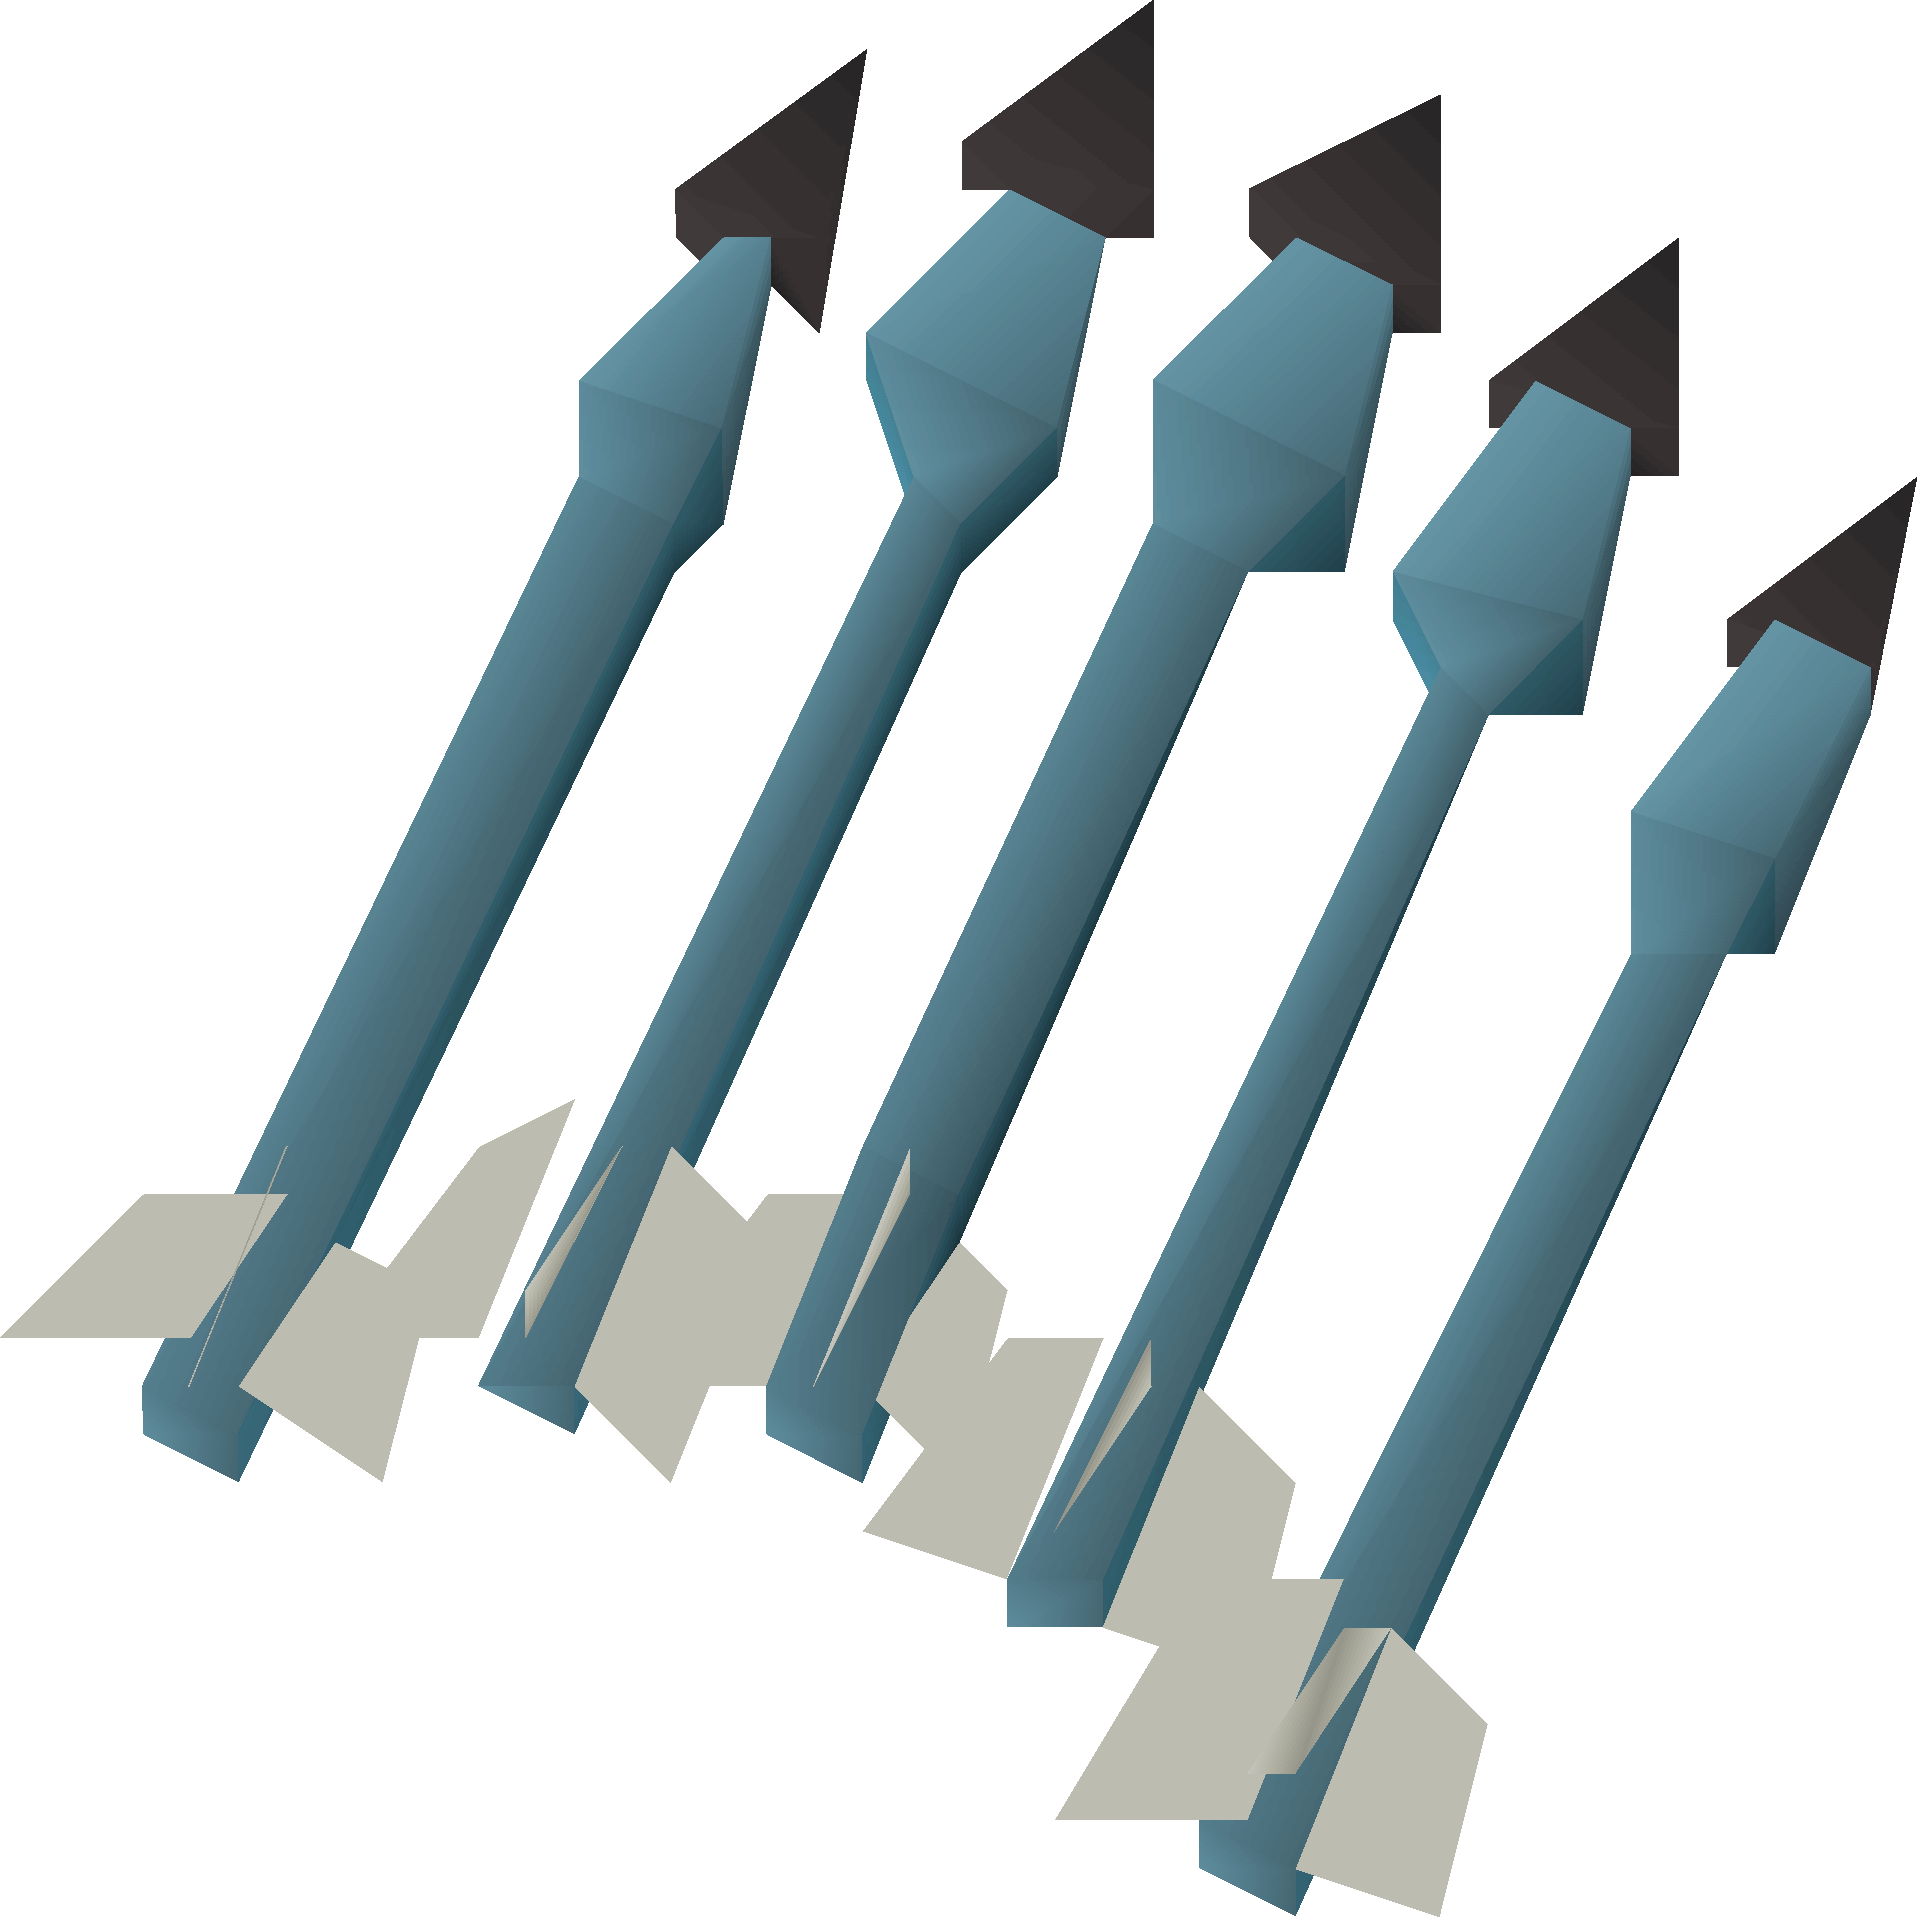 File:Onyx bolts (e) detail.png